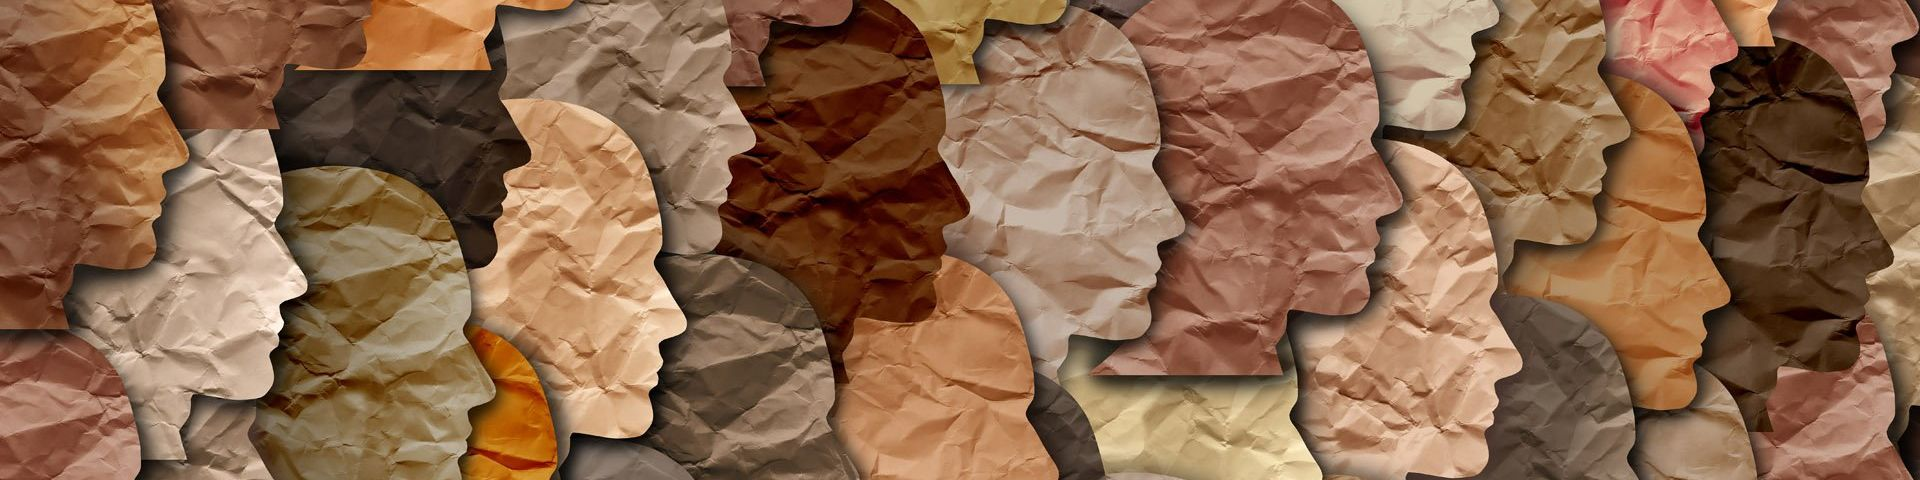 Featureless, slightly crumpled paper faces of all different skin tones, facing right and overlaid onto each other in a collage style